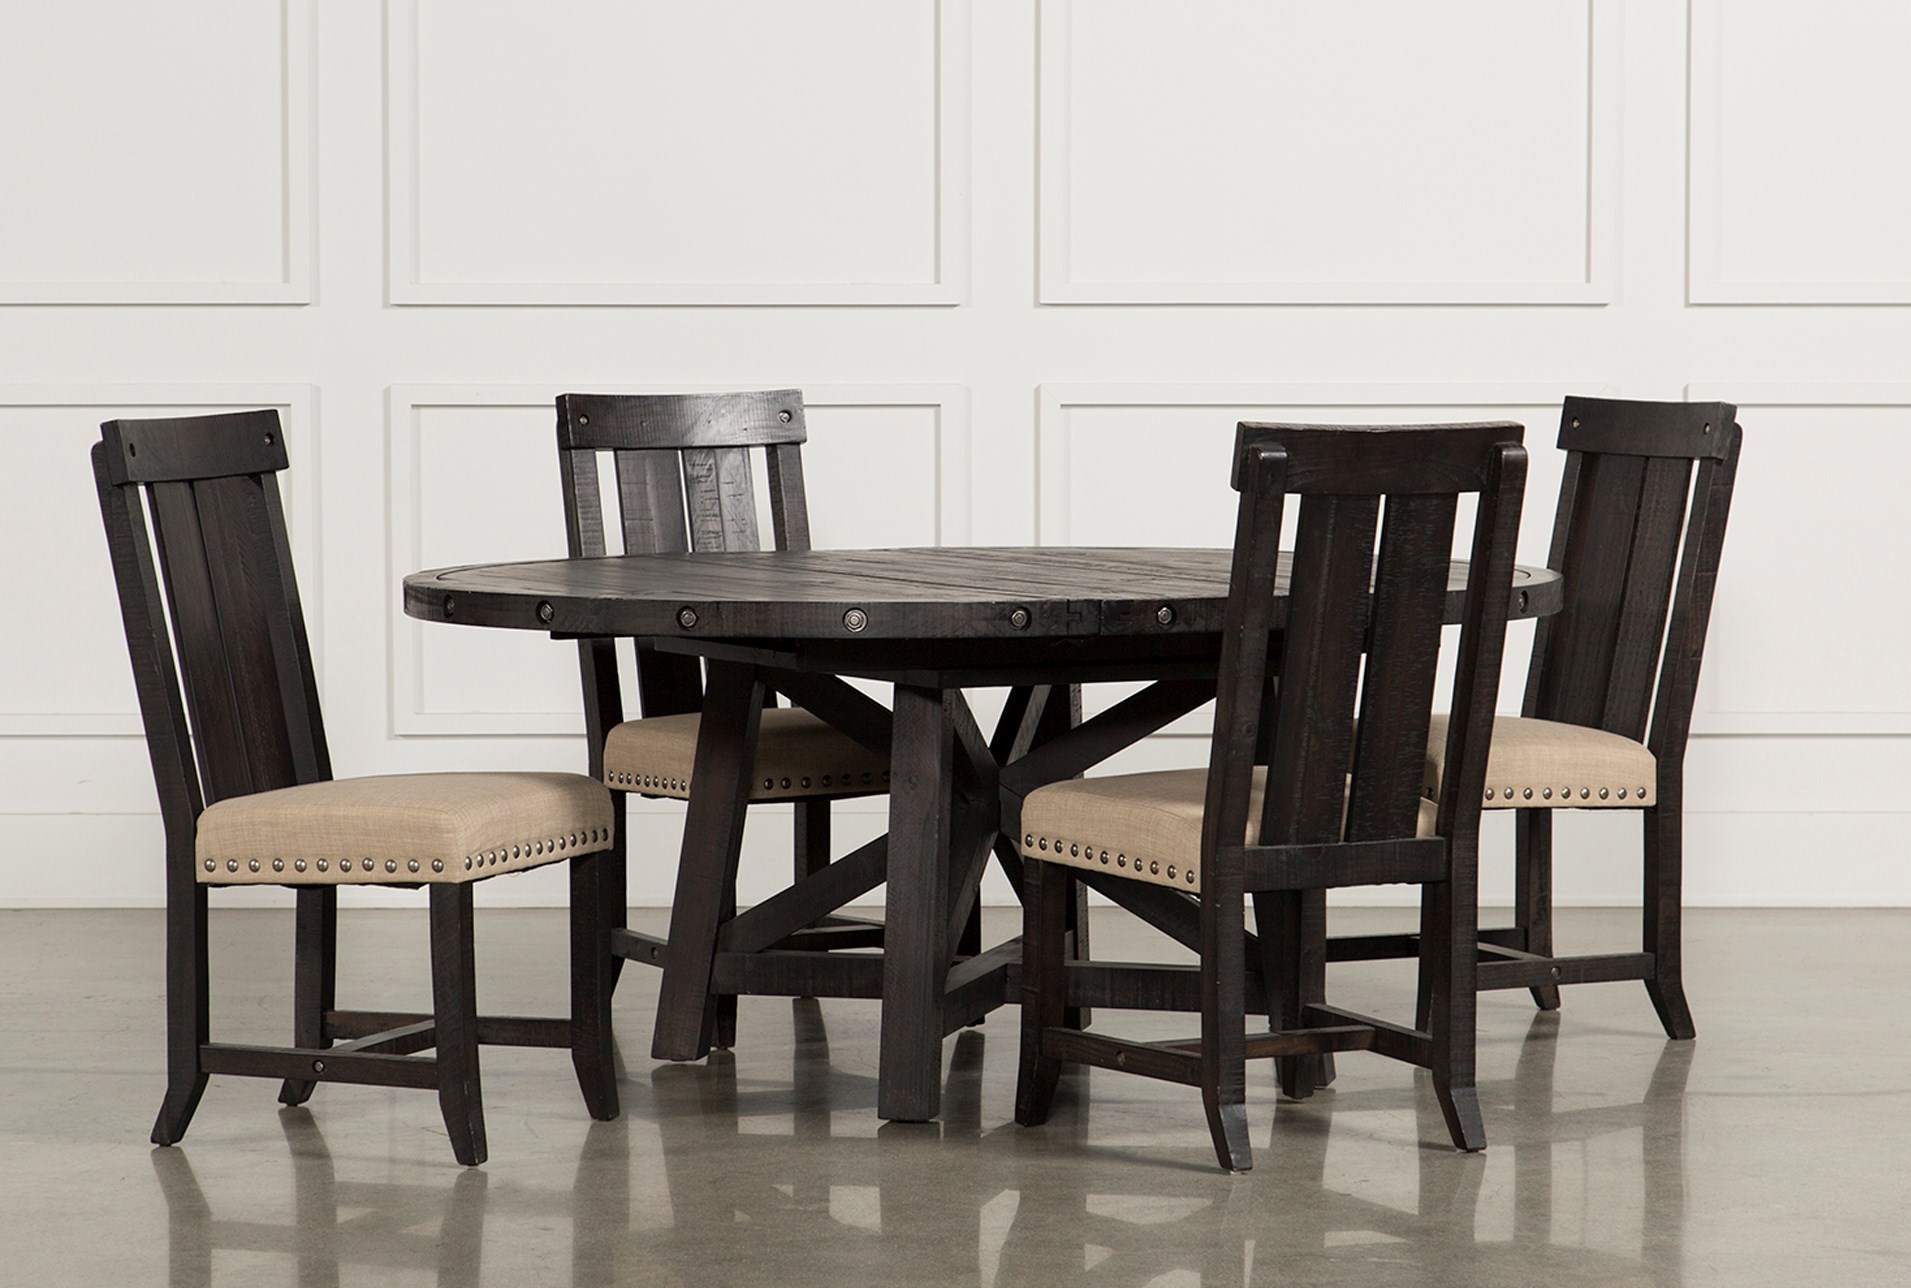 Jaxon 5 Piece Extension Round Dining Set W/Wood Chairs | Living Spaces